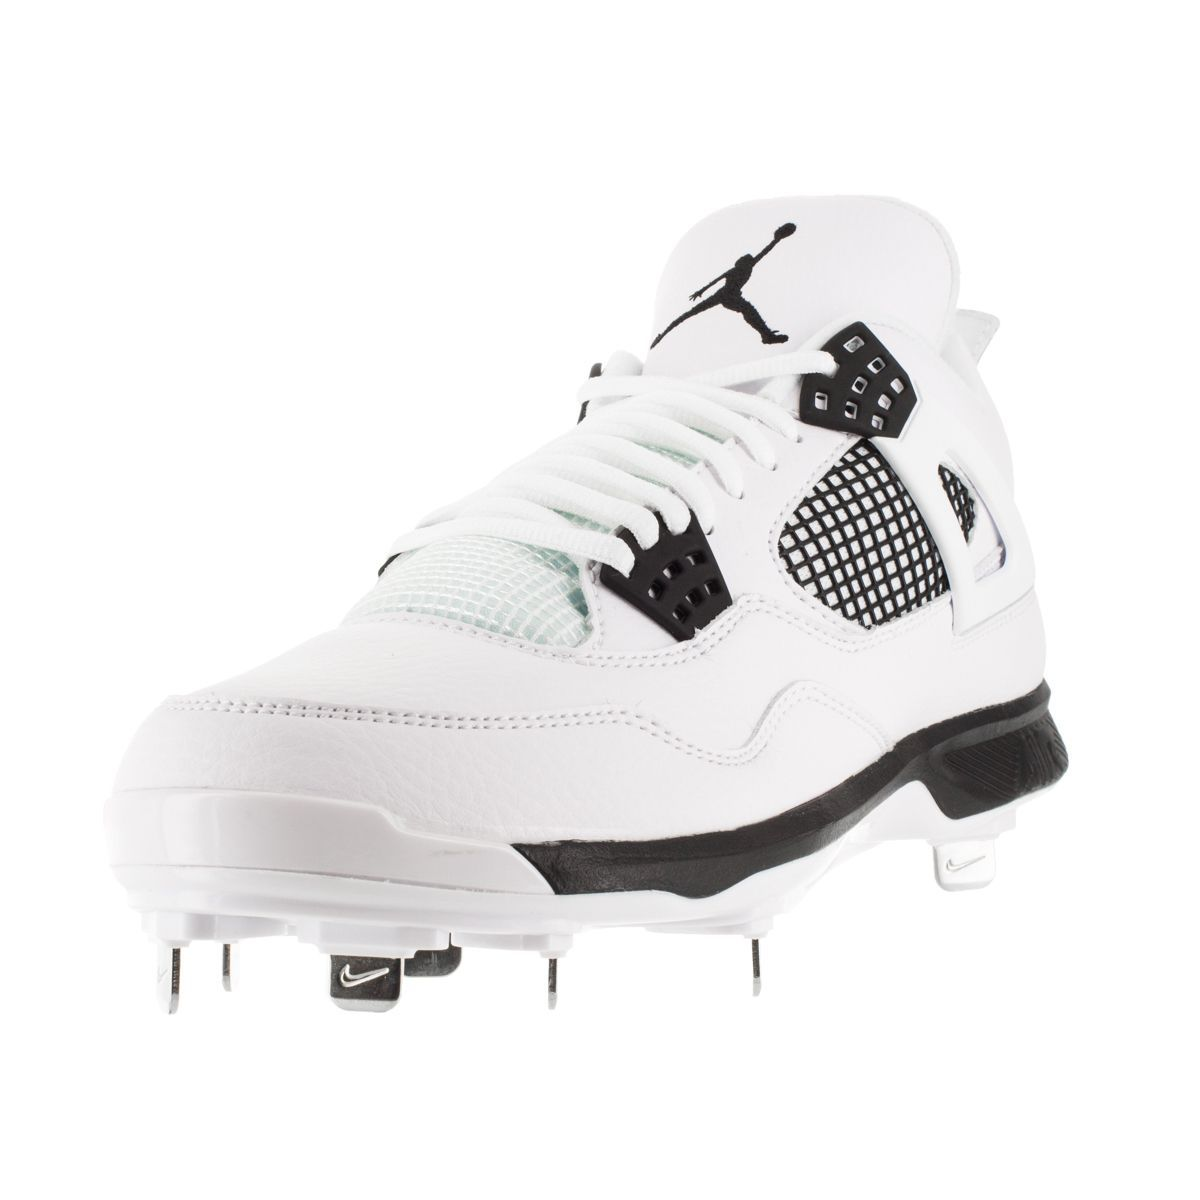 nike jordan youth baseball cleats